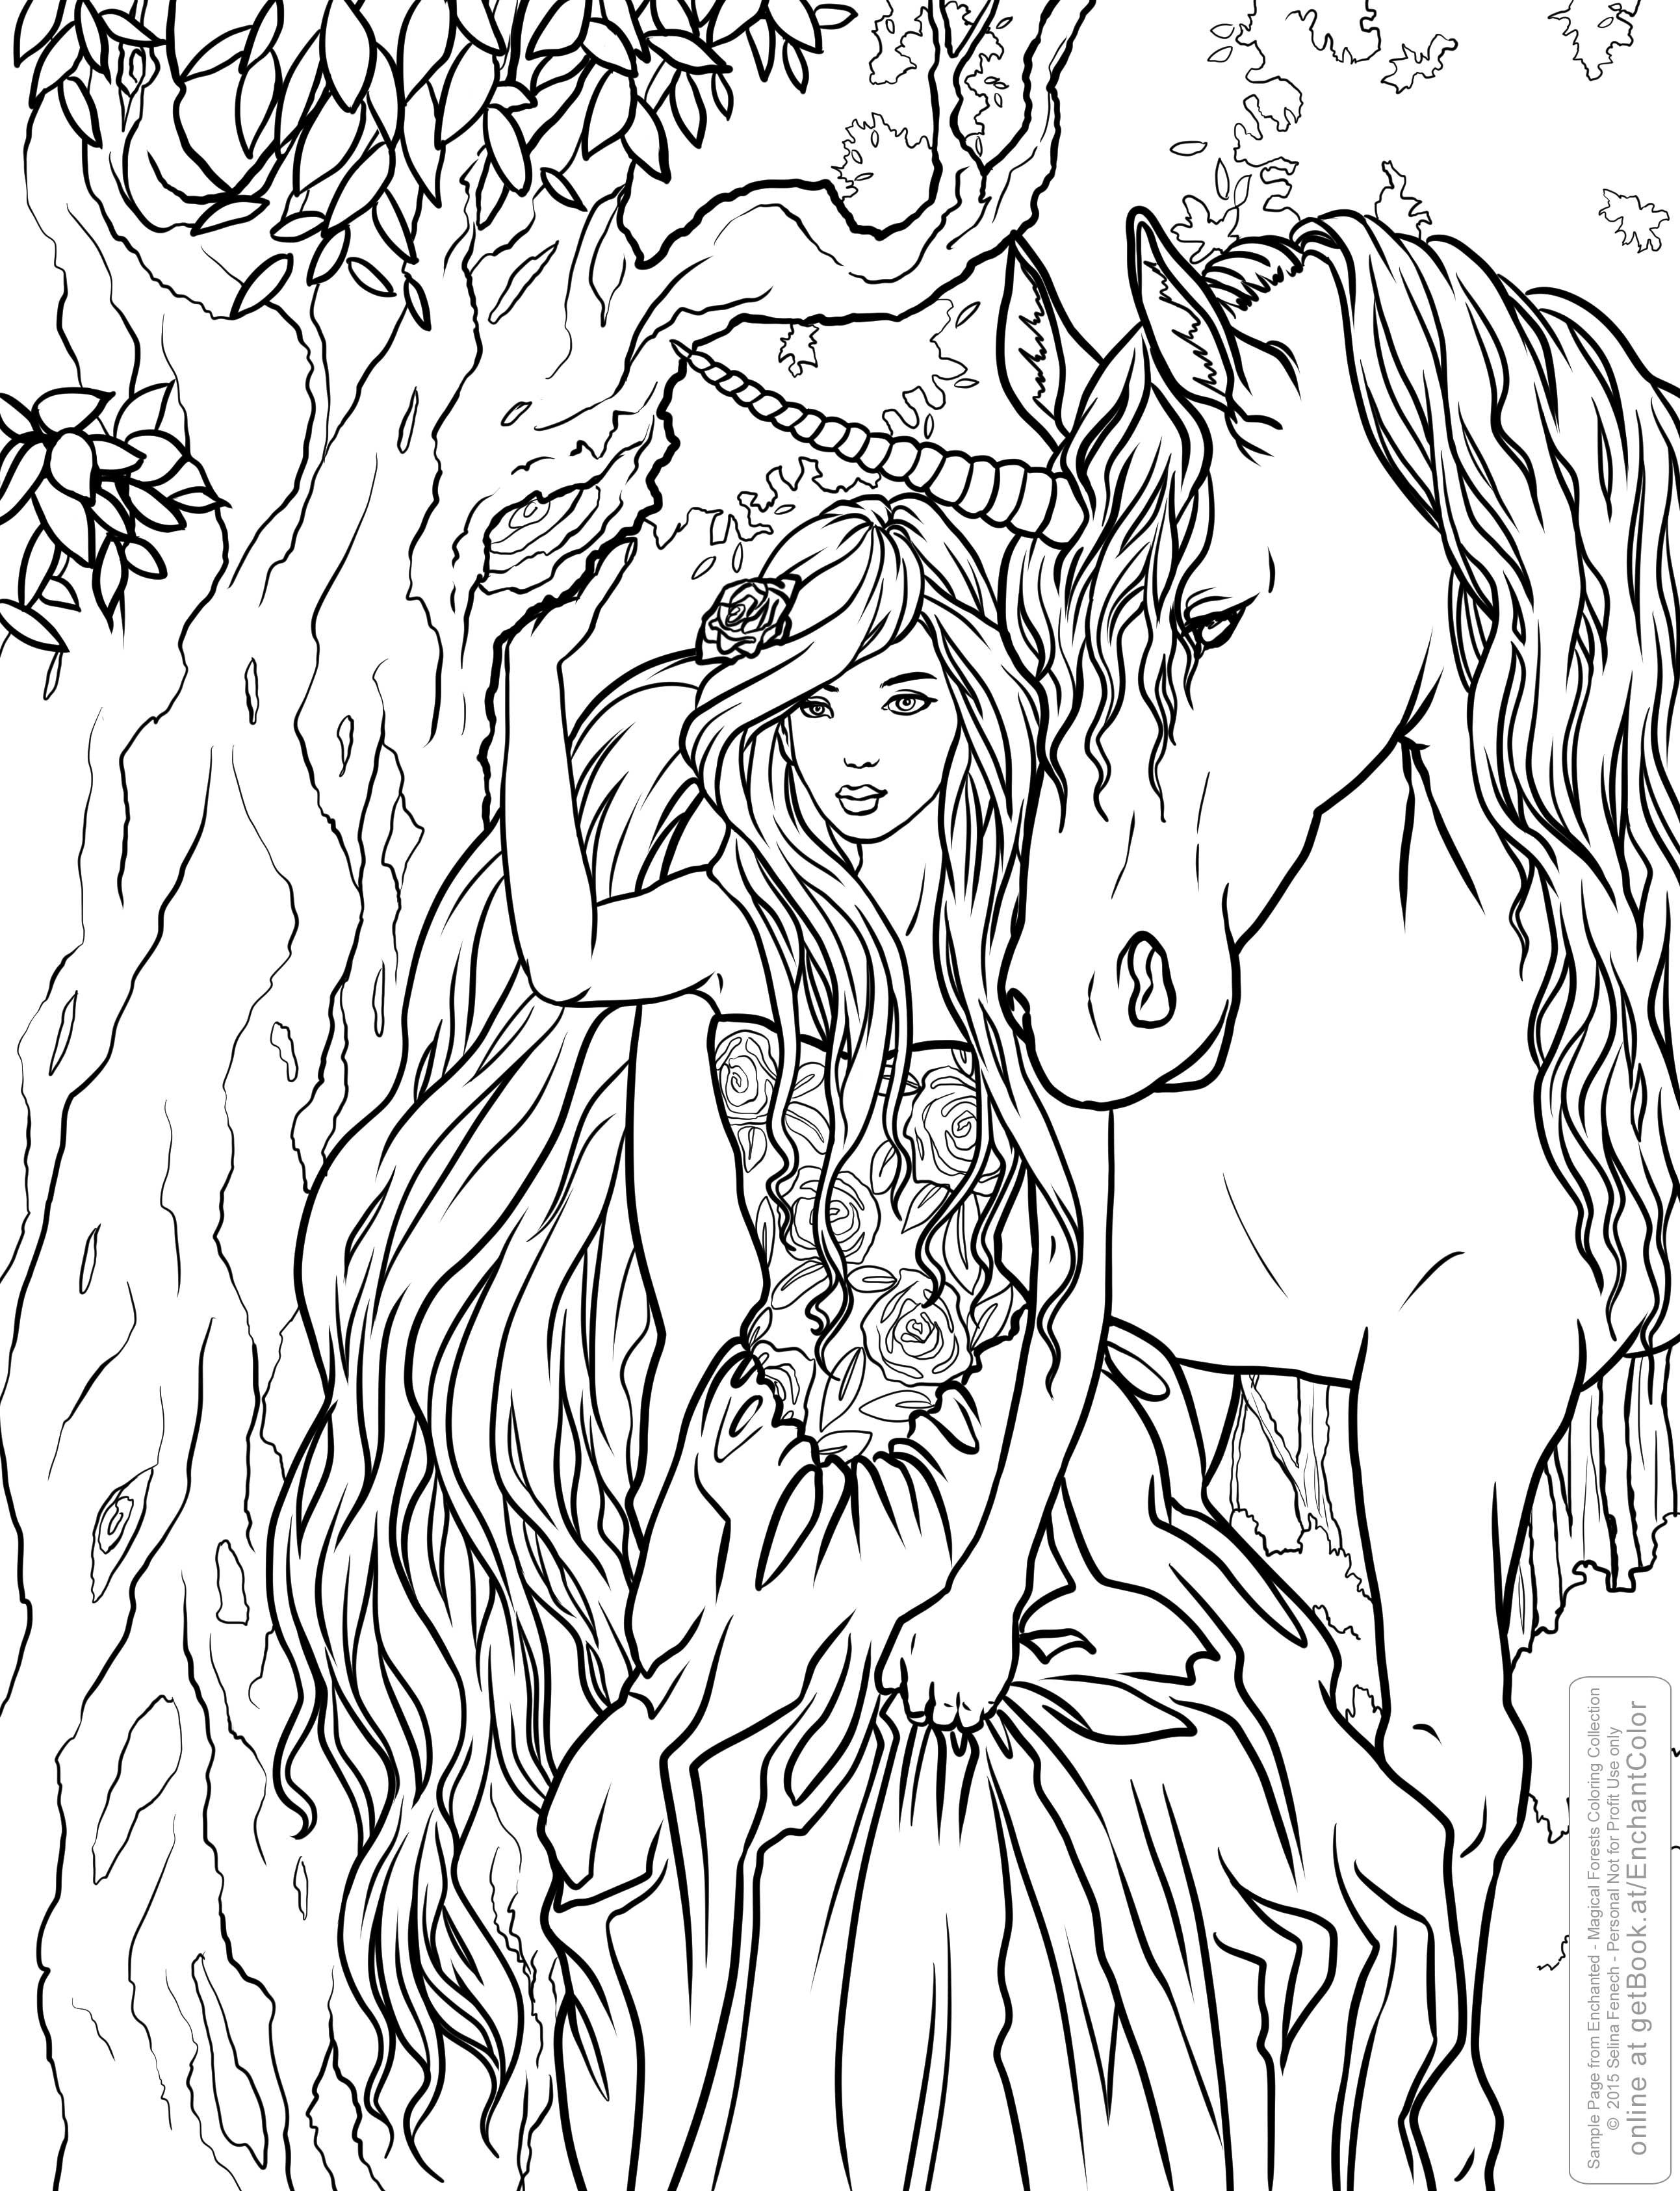 coloring_SelinaFenech_Enchanted | LineArt: Unicorns | Pinterest ...